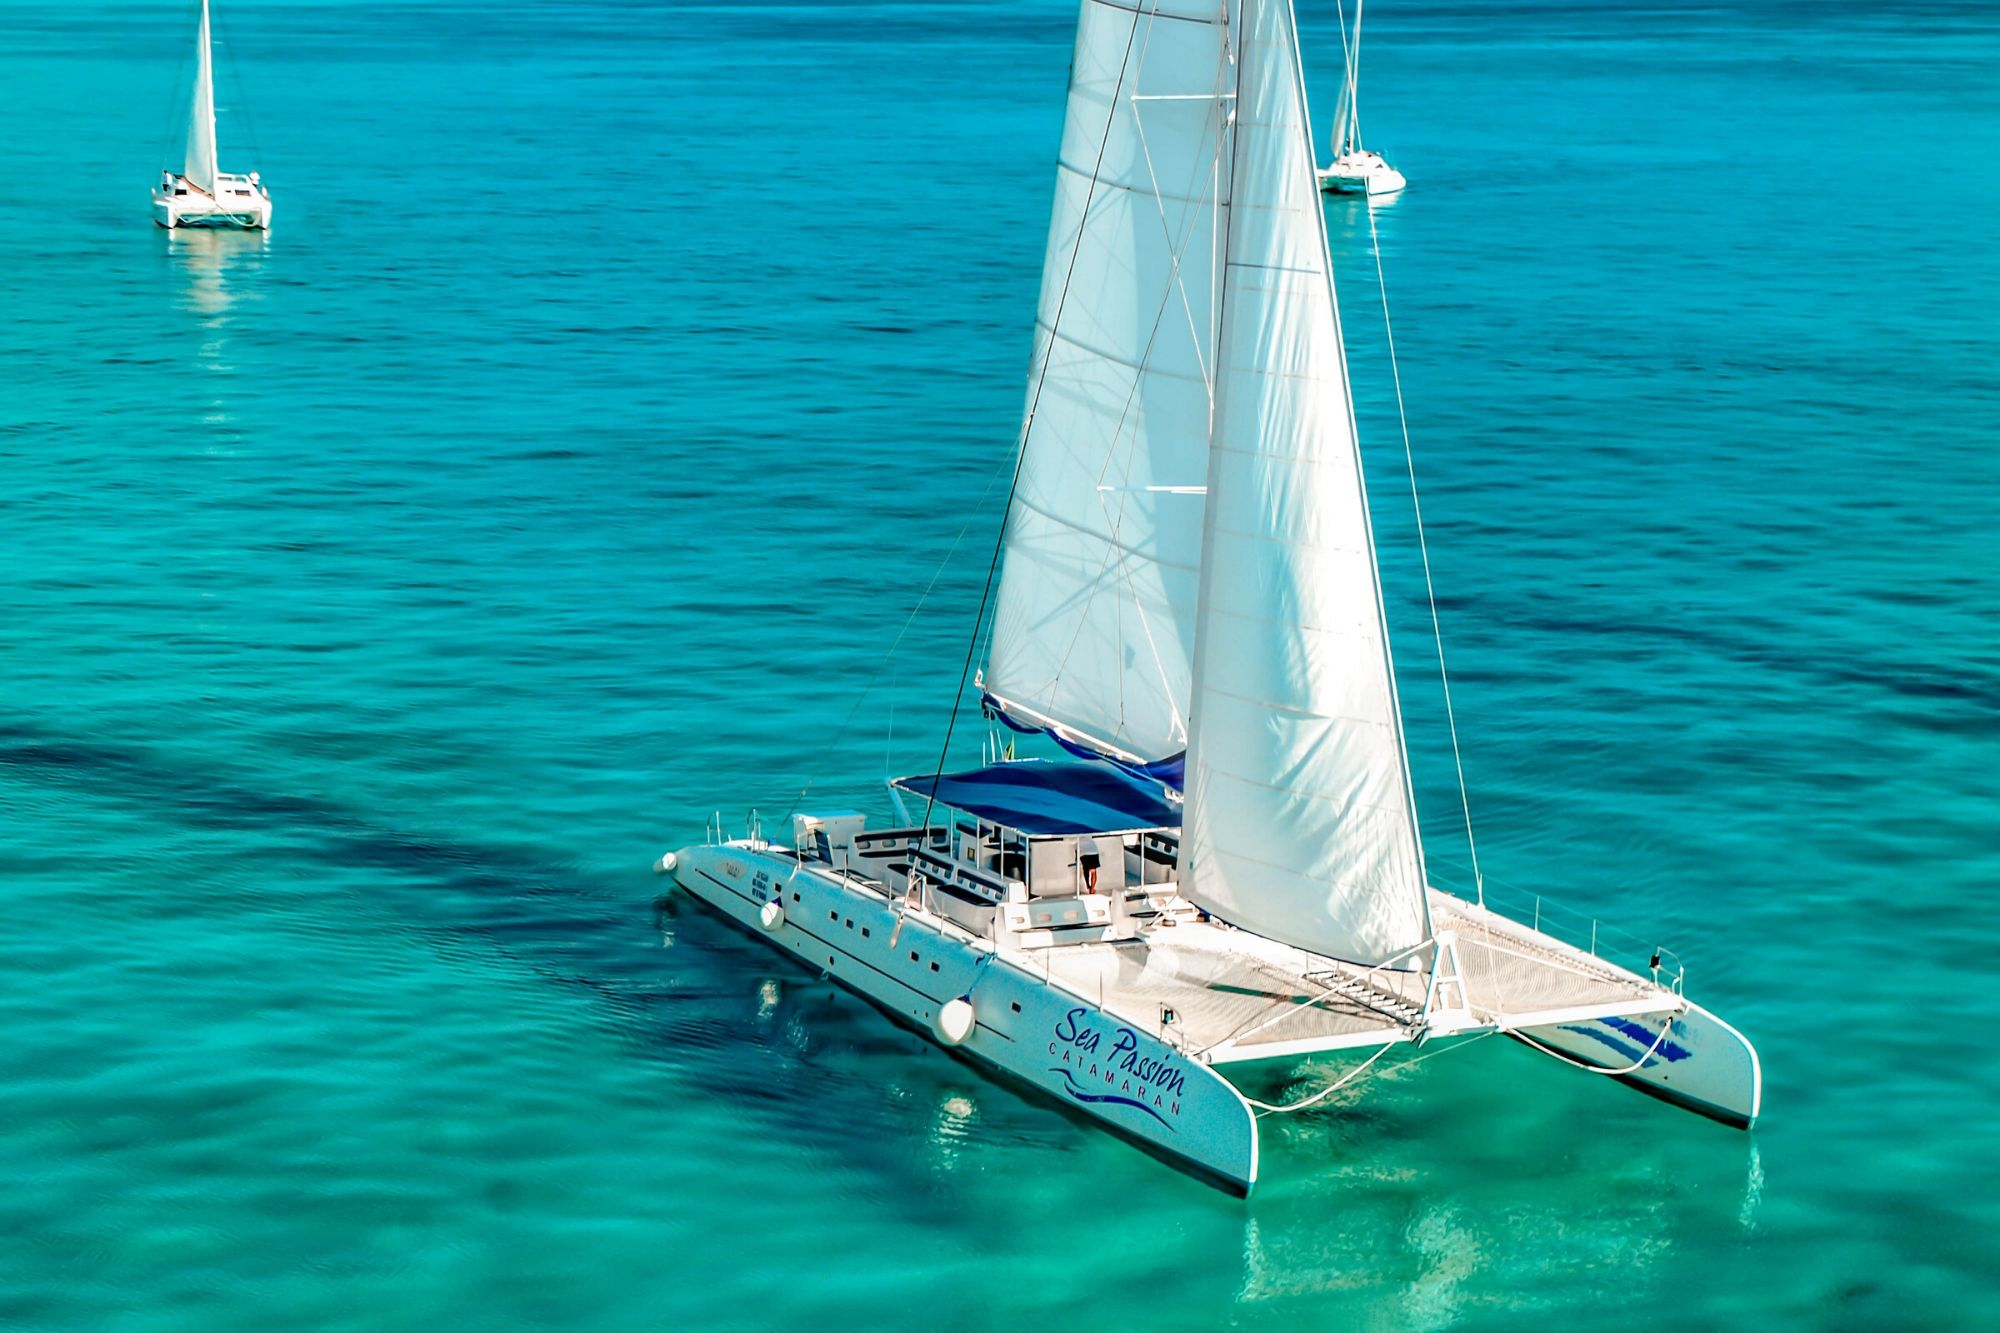 2 - HiRes - Private Isla Mujeres tour in catamaran - Sea Passion I II - Cancun Sailing